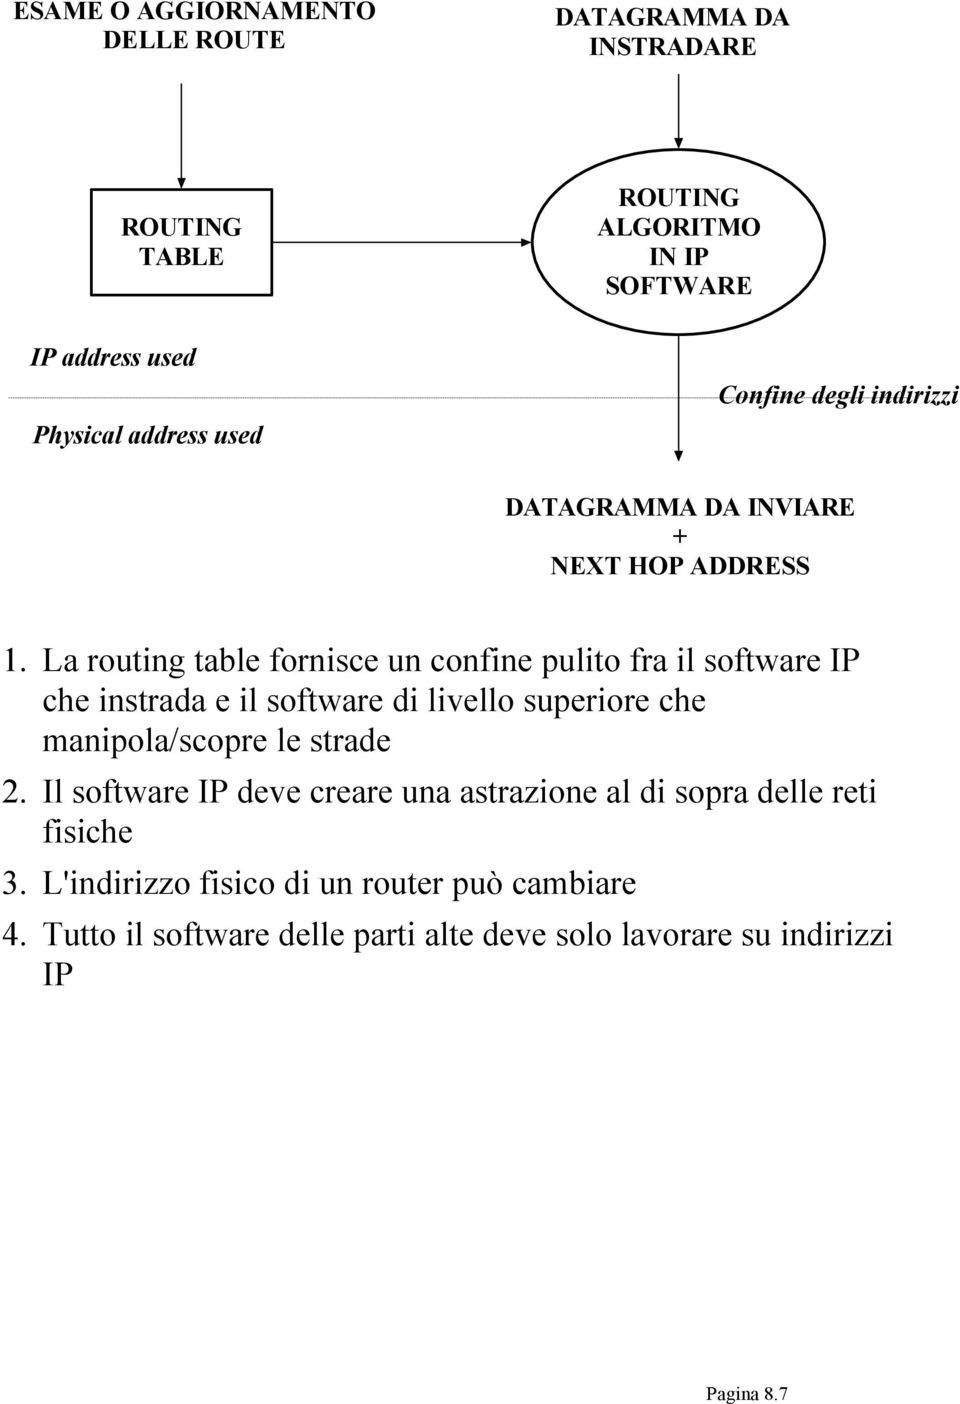 La routing table fornisce un confine pulito fra il software IP che instrada e il software di livello superiore che manipola/scopre le